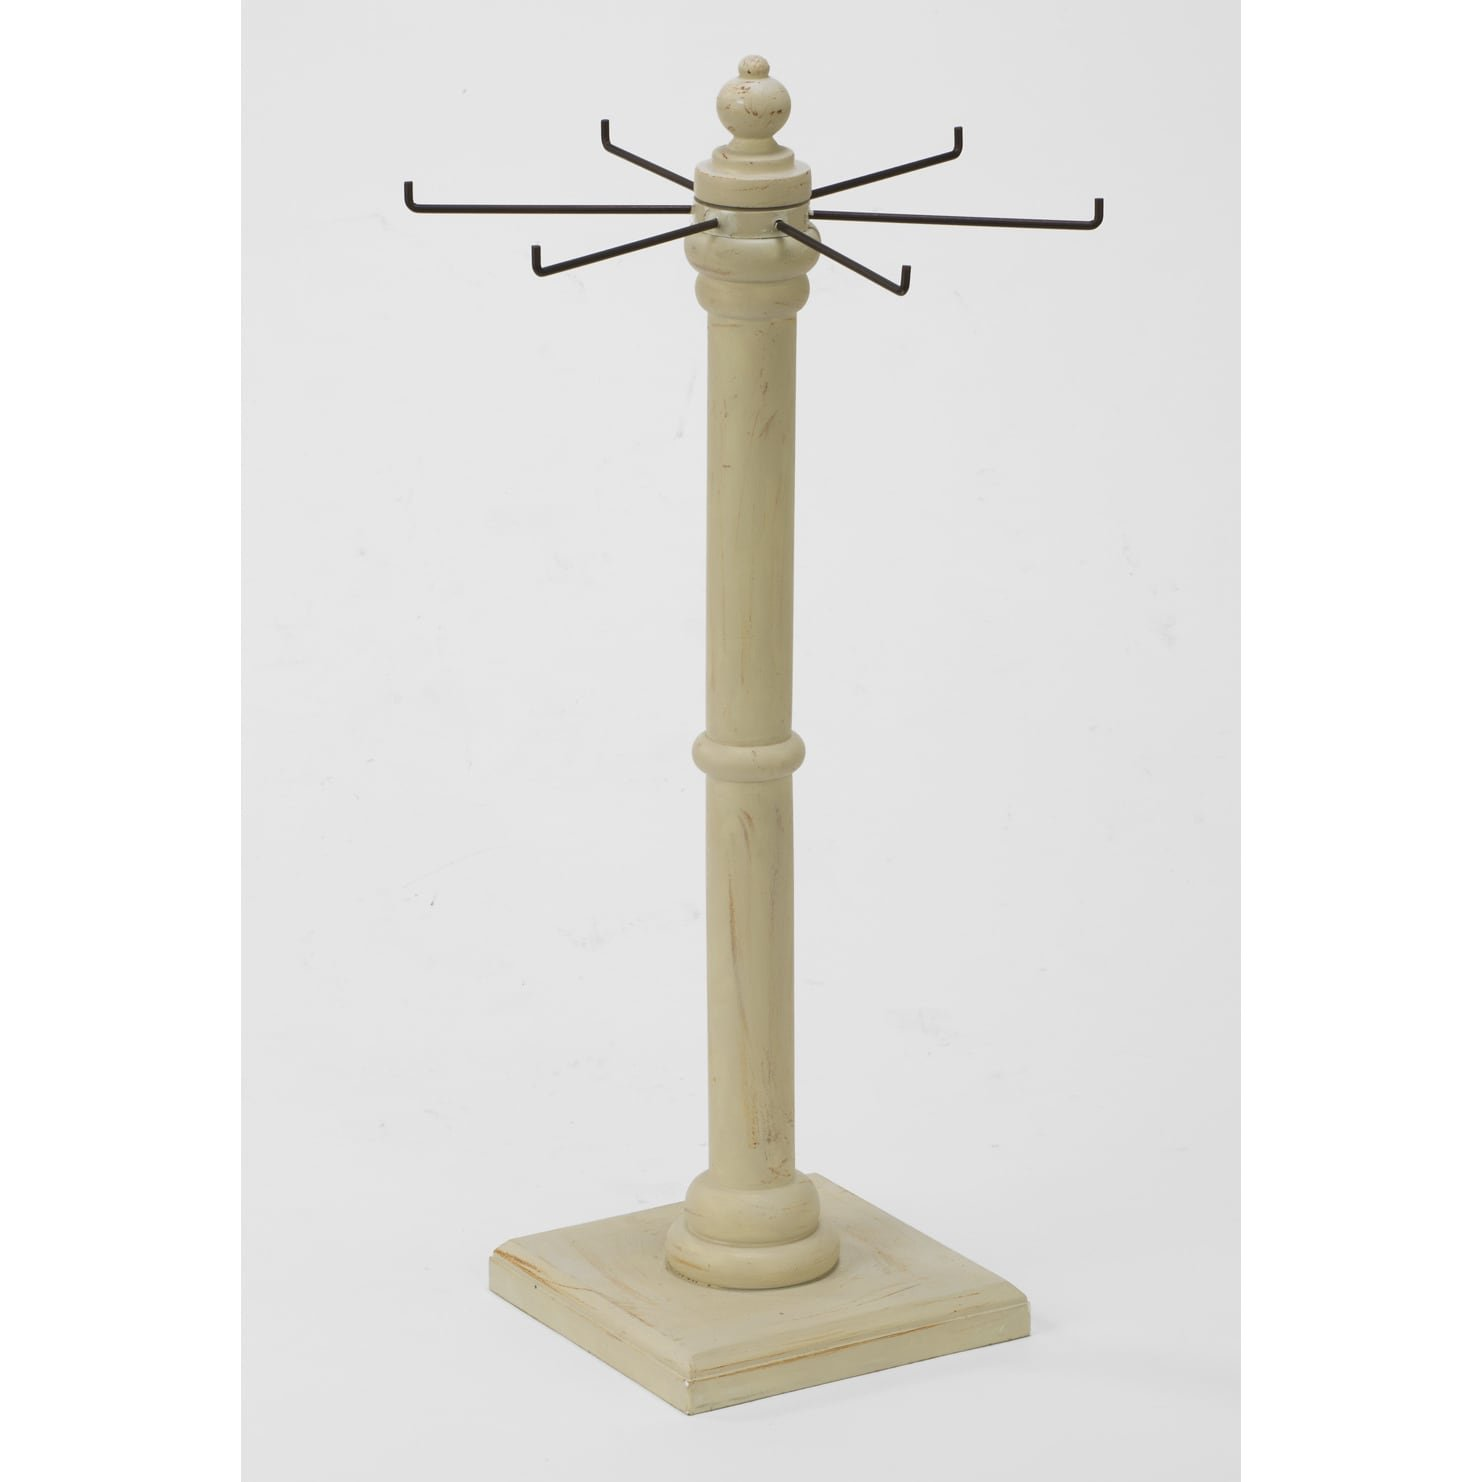 TRIPAR 17853 22.75 Inch Wooden Single Tier Stand with Hooks